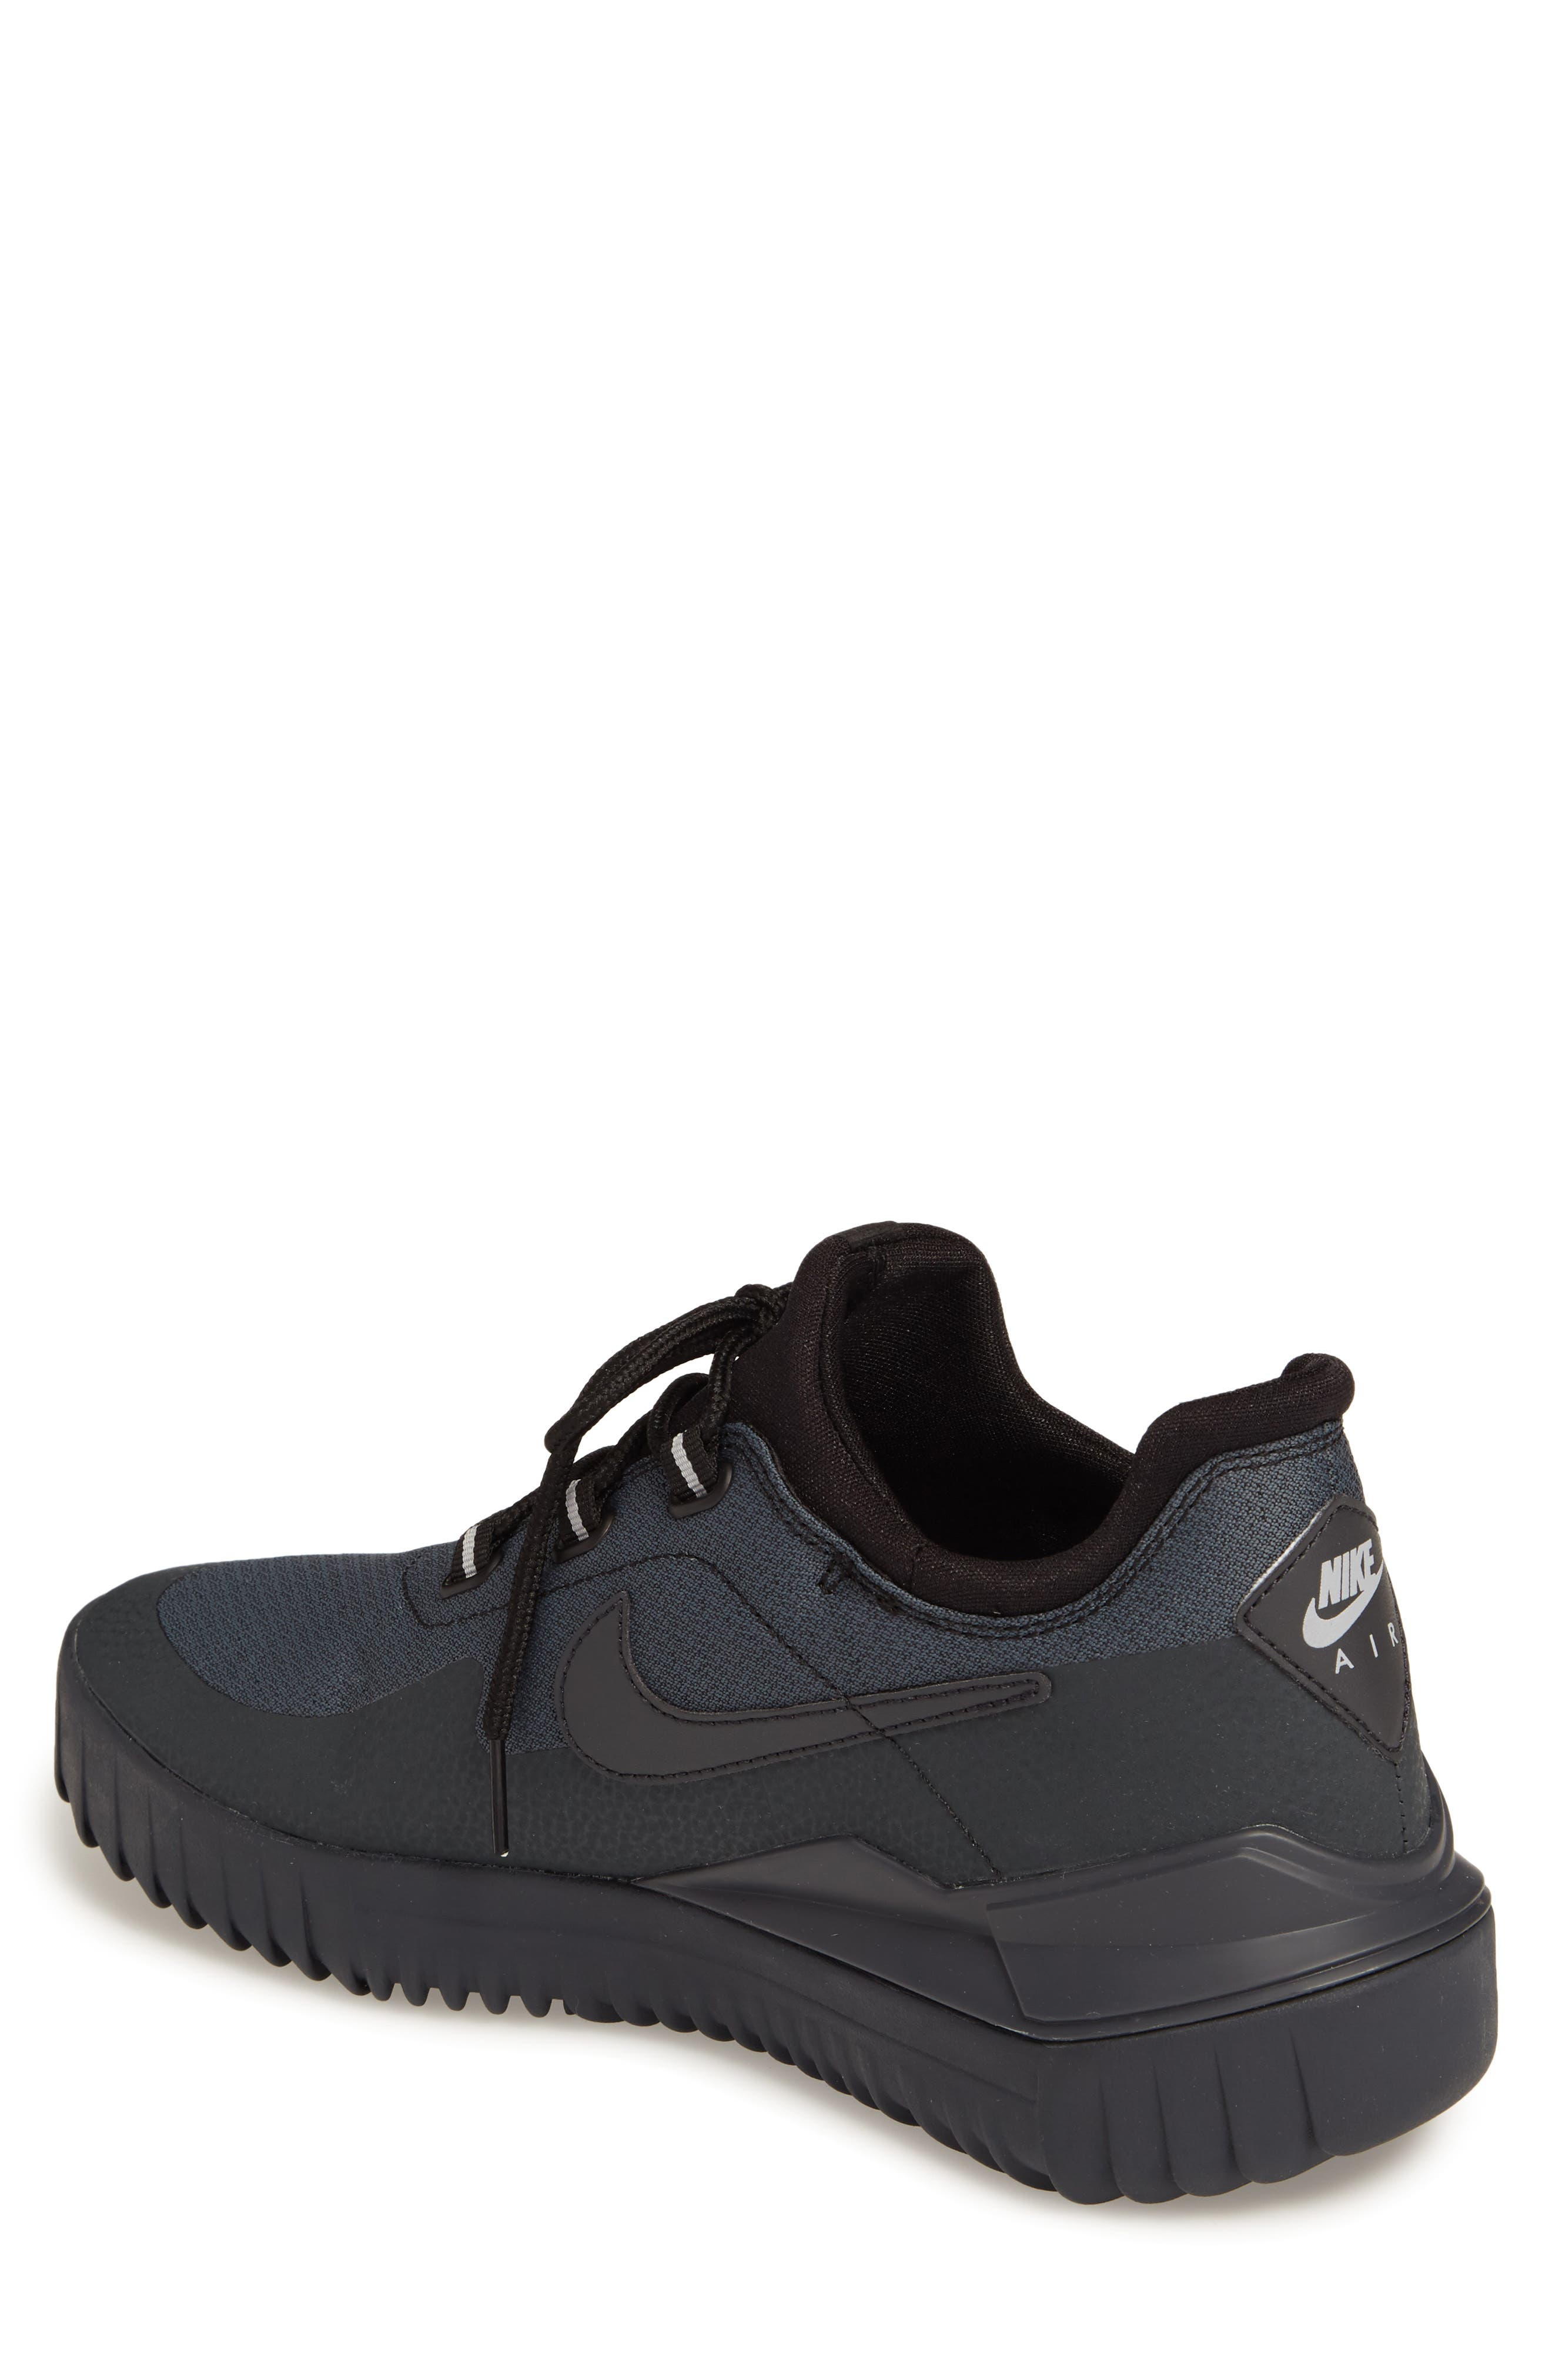 Air Wild Sneaker,                             Alternate thumbnail 2, color,                             Black/ Anthracite/ Grey